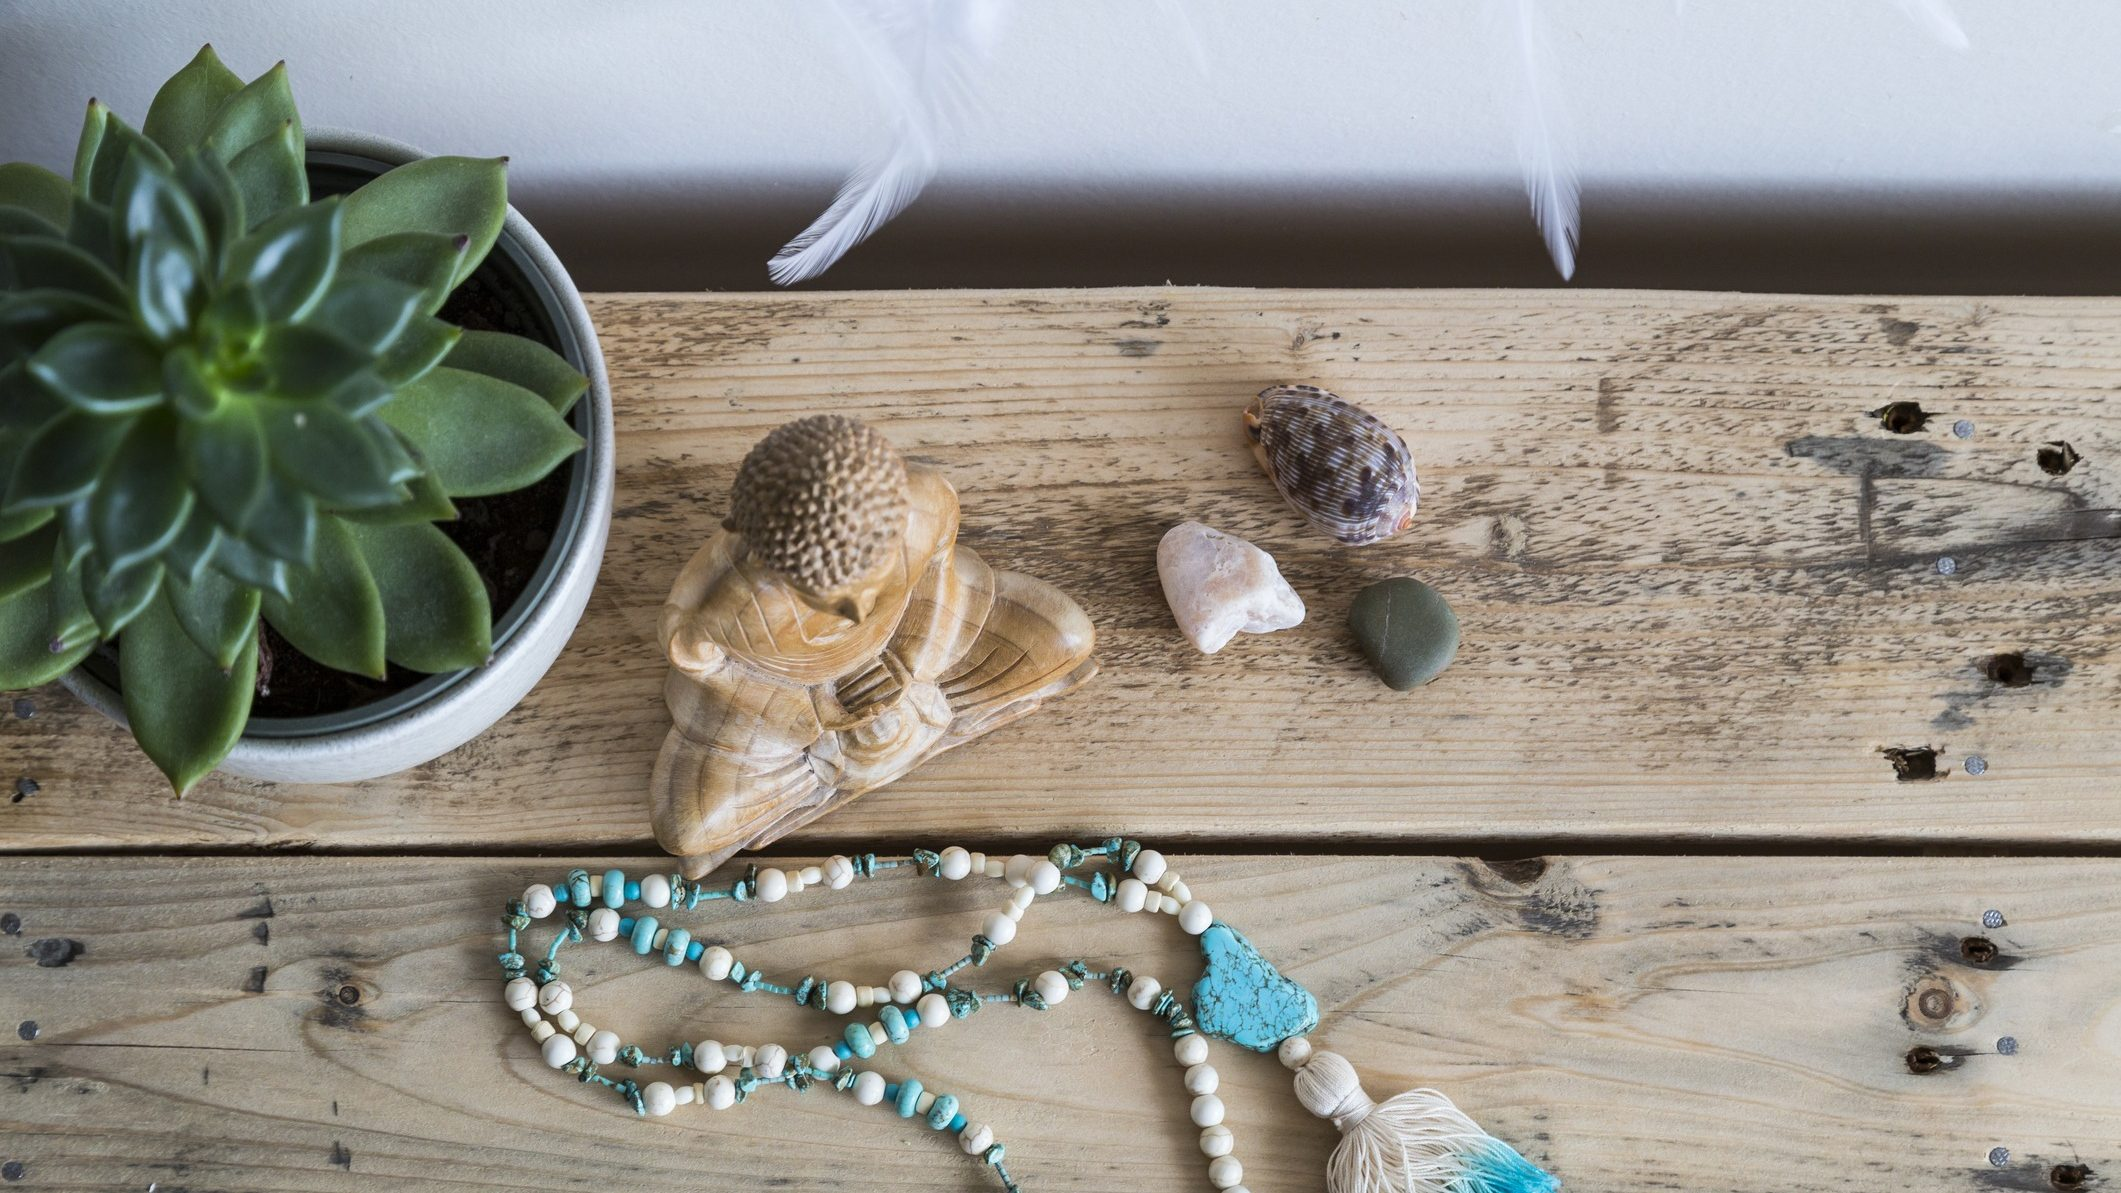 Why Does Your Mala Necklace Have 108 Beads?